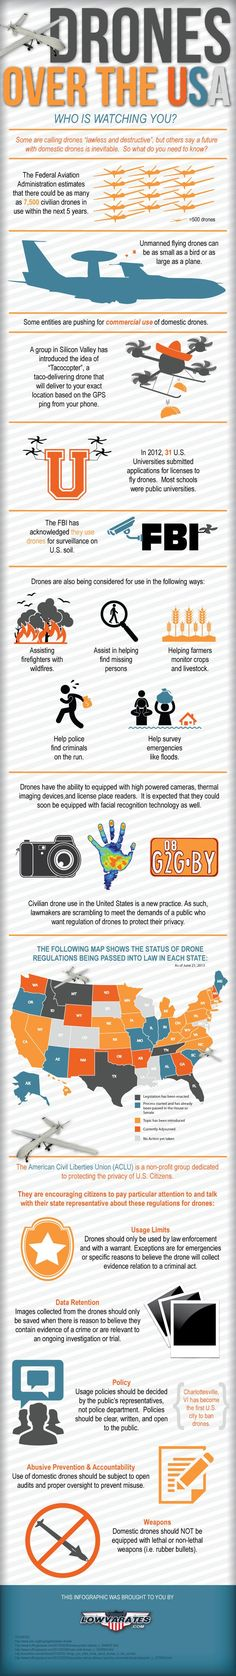 Drones over the U.S. infographic